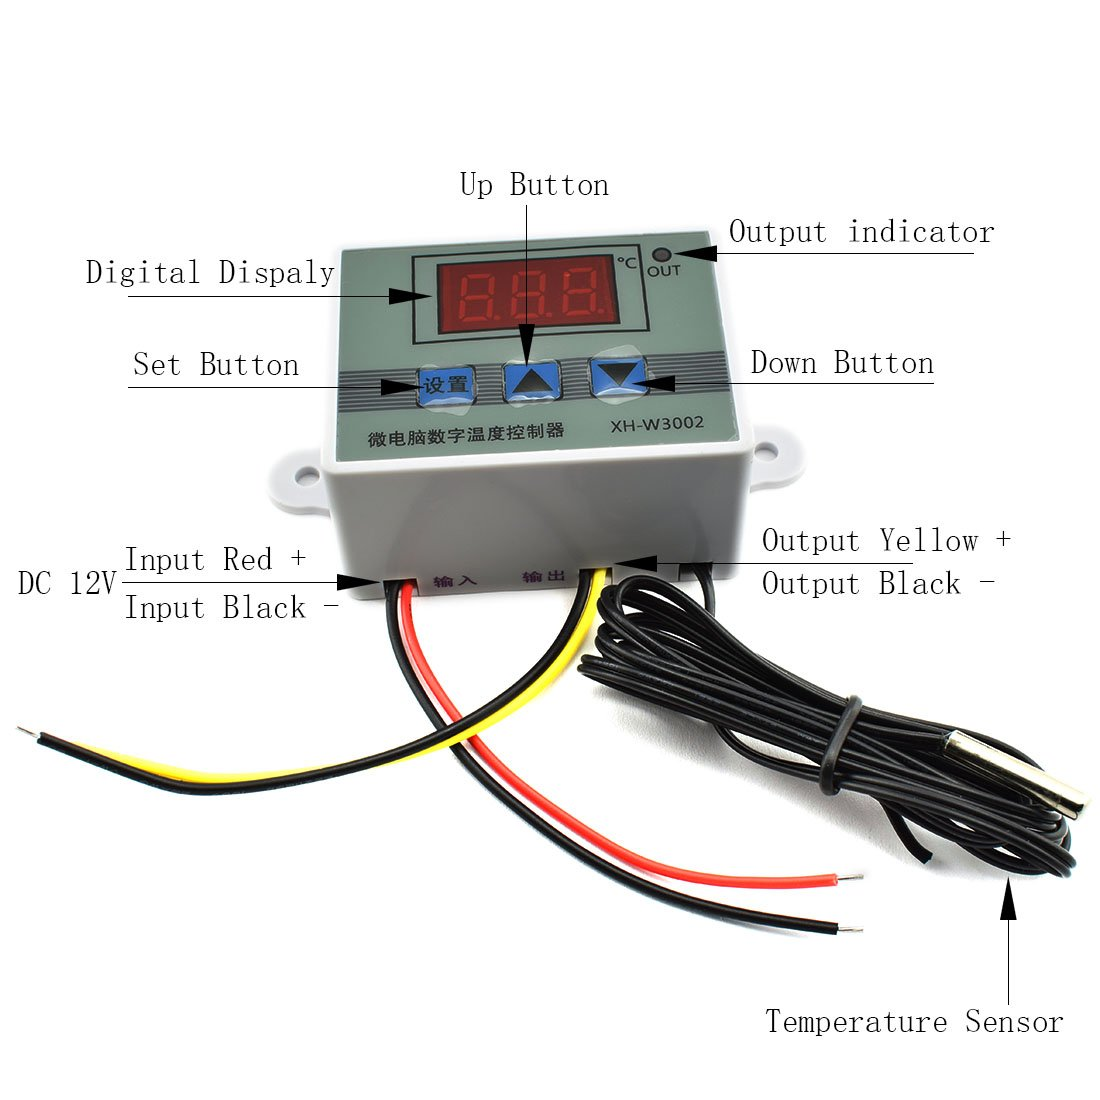 HJ Garden XH-W3002 Mini Thermostat DC 12V 10A Digital LED Temperature Controller -50 to 110 Degree Heating / Cooling Temperature Control Switch with Waterproof Sensor Probe by HJ Garden (Image #2)